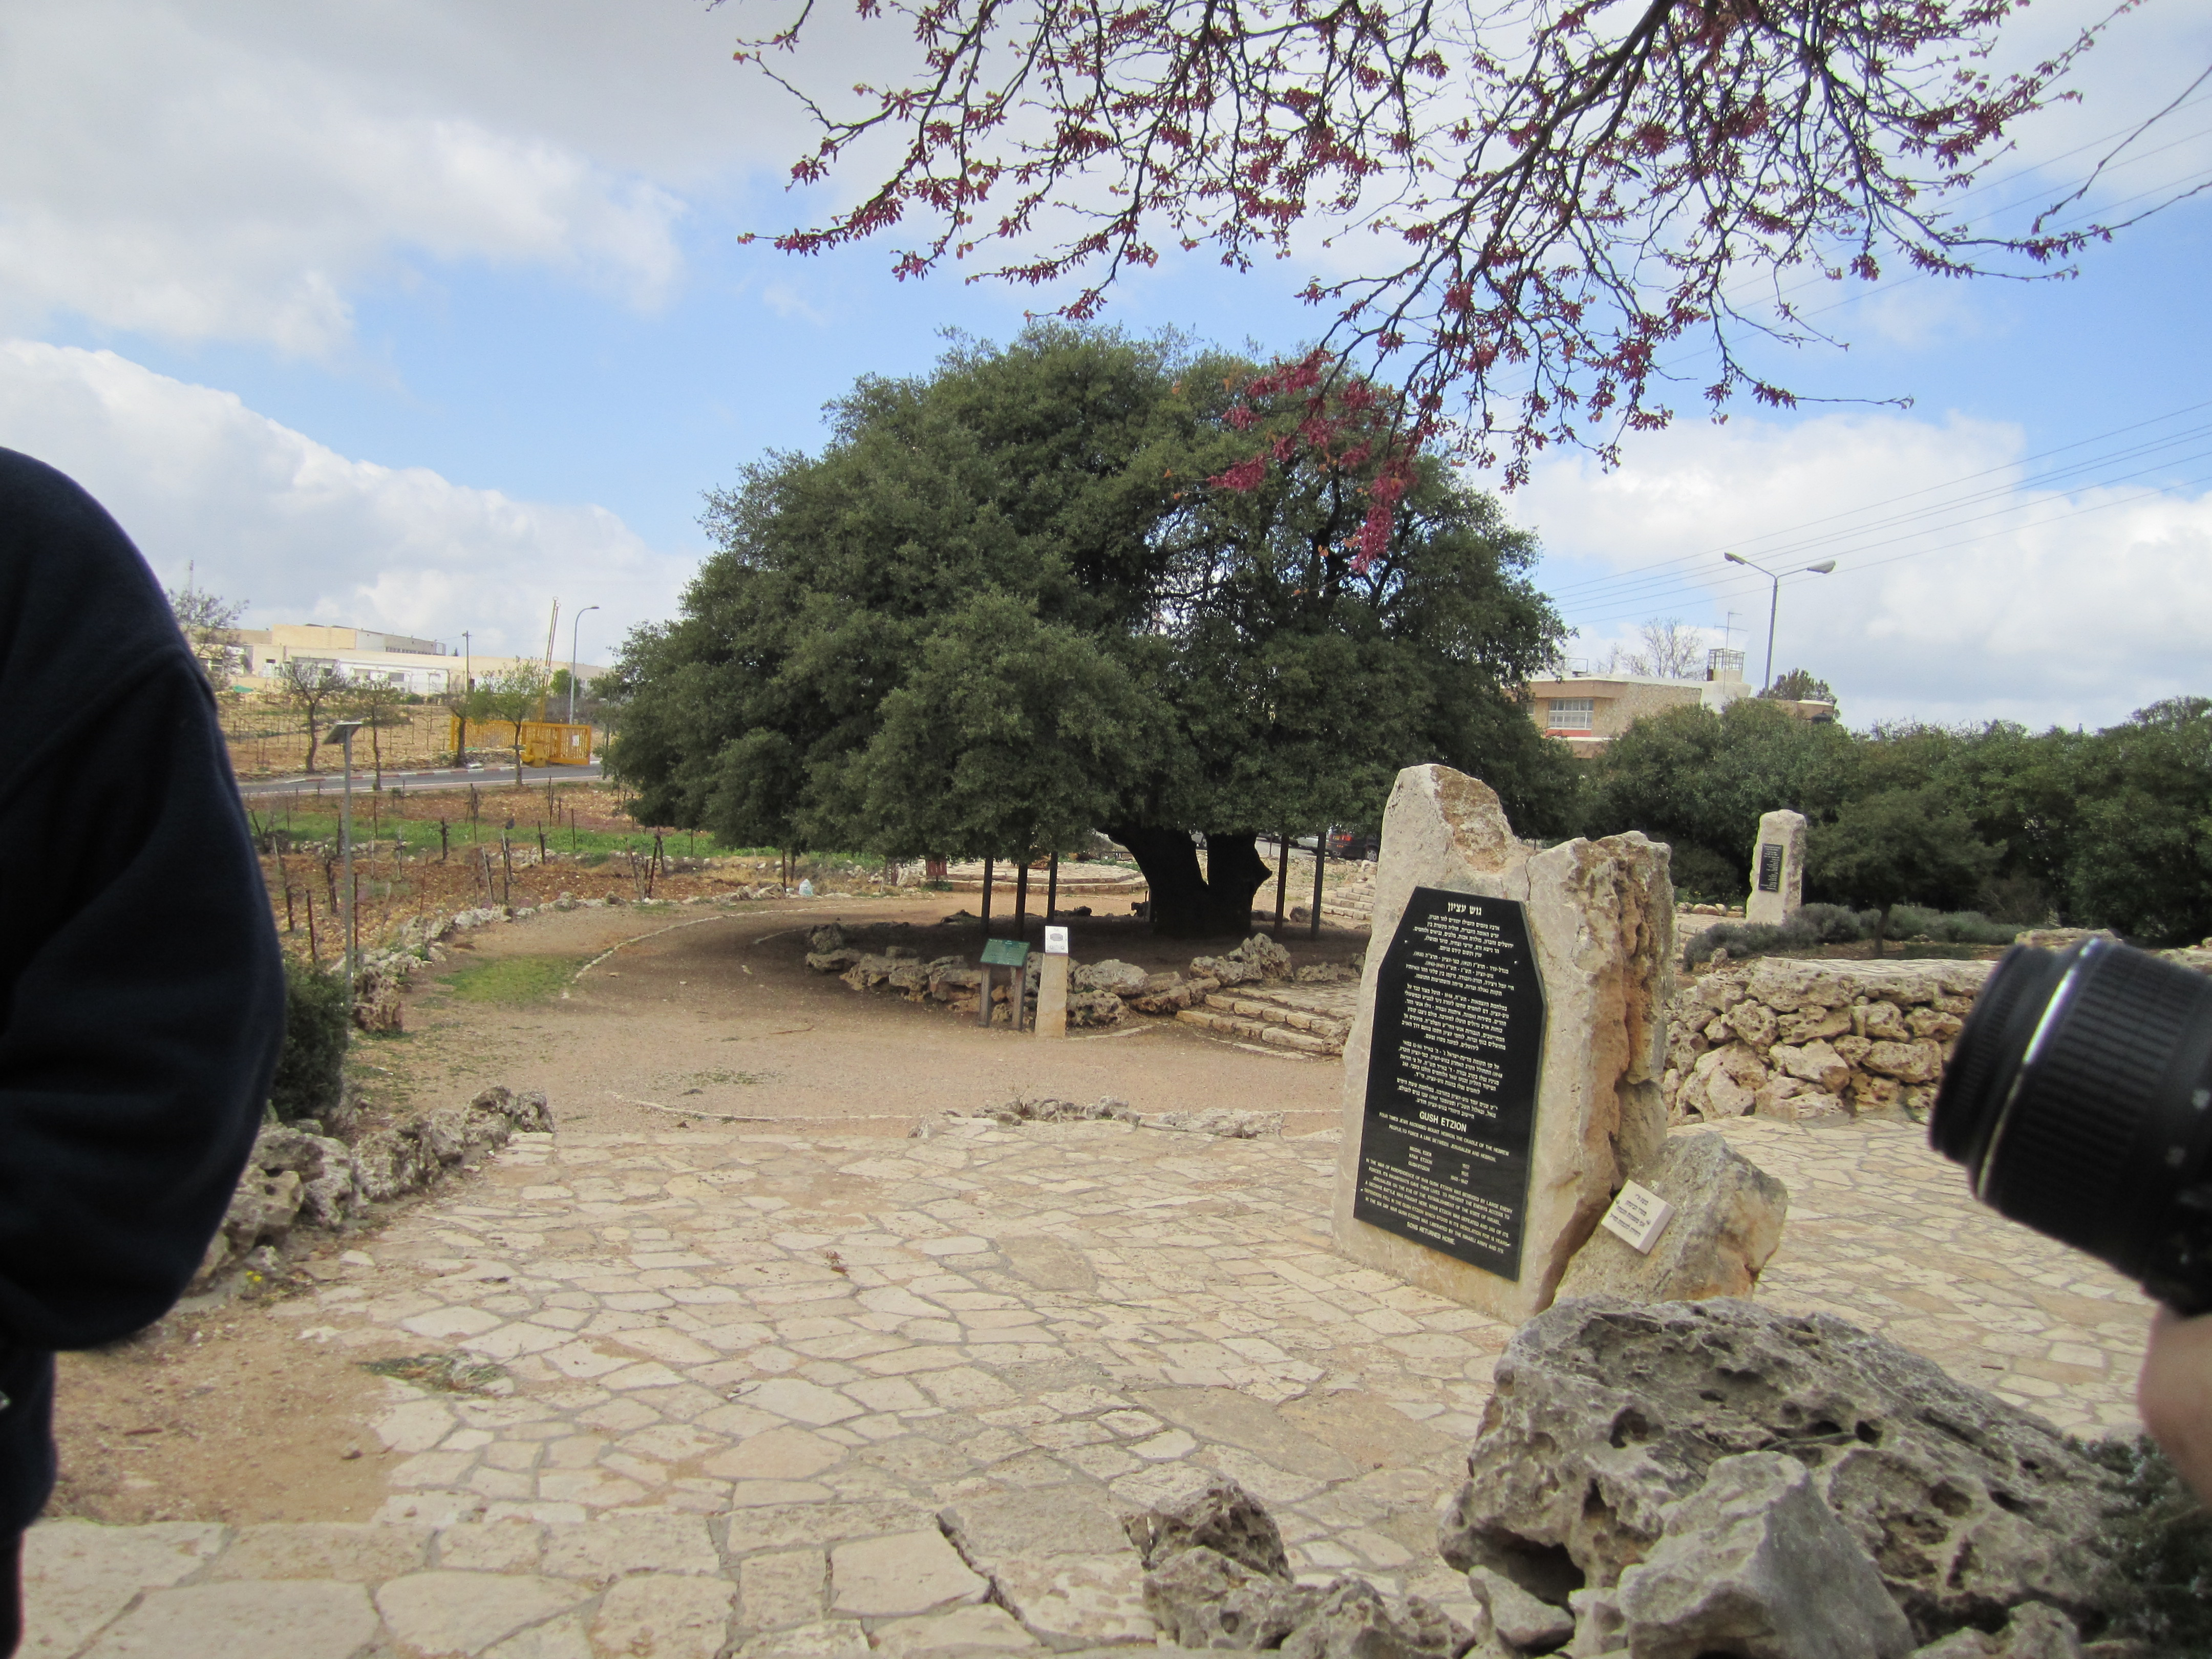 Iconic Lone Tree in Gush Etzion